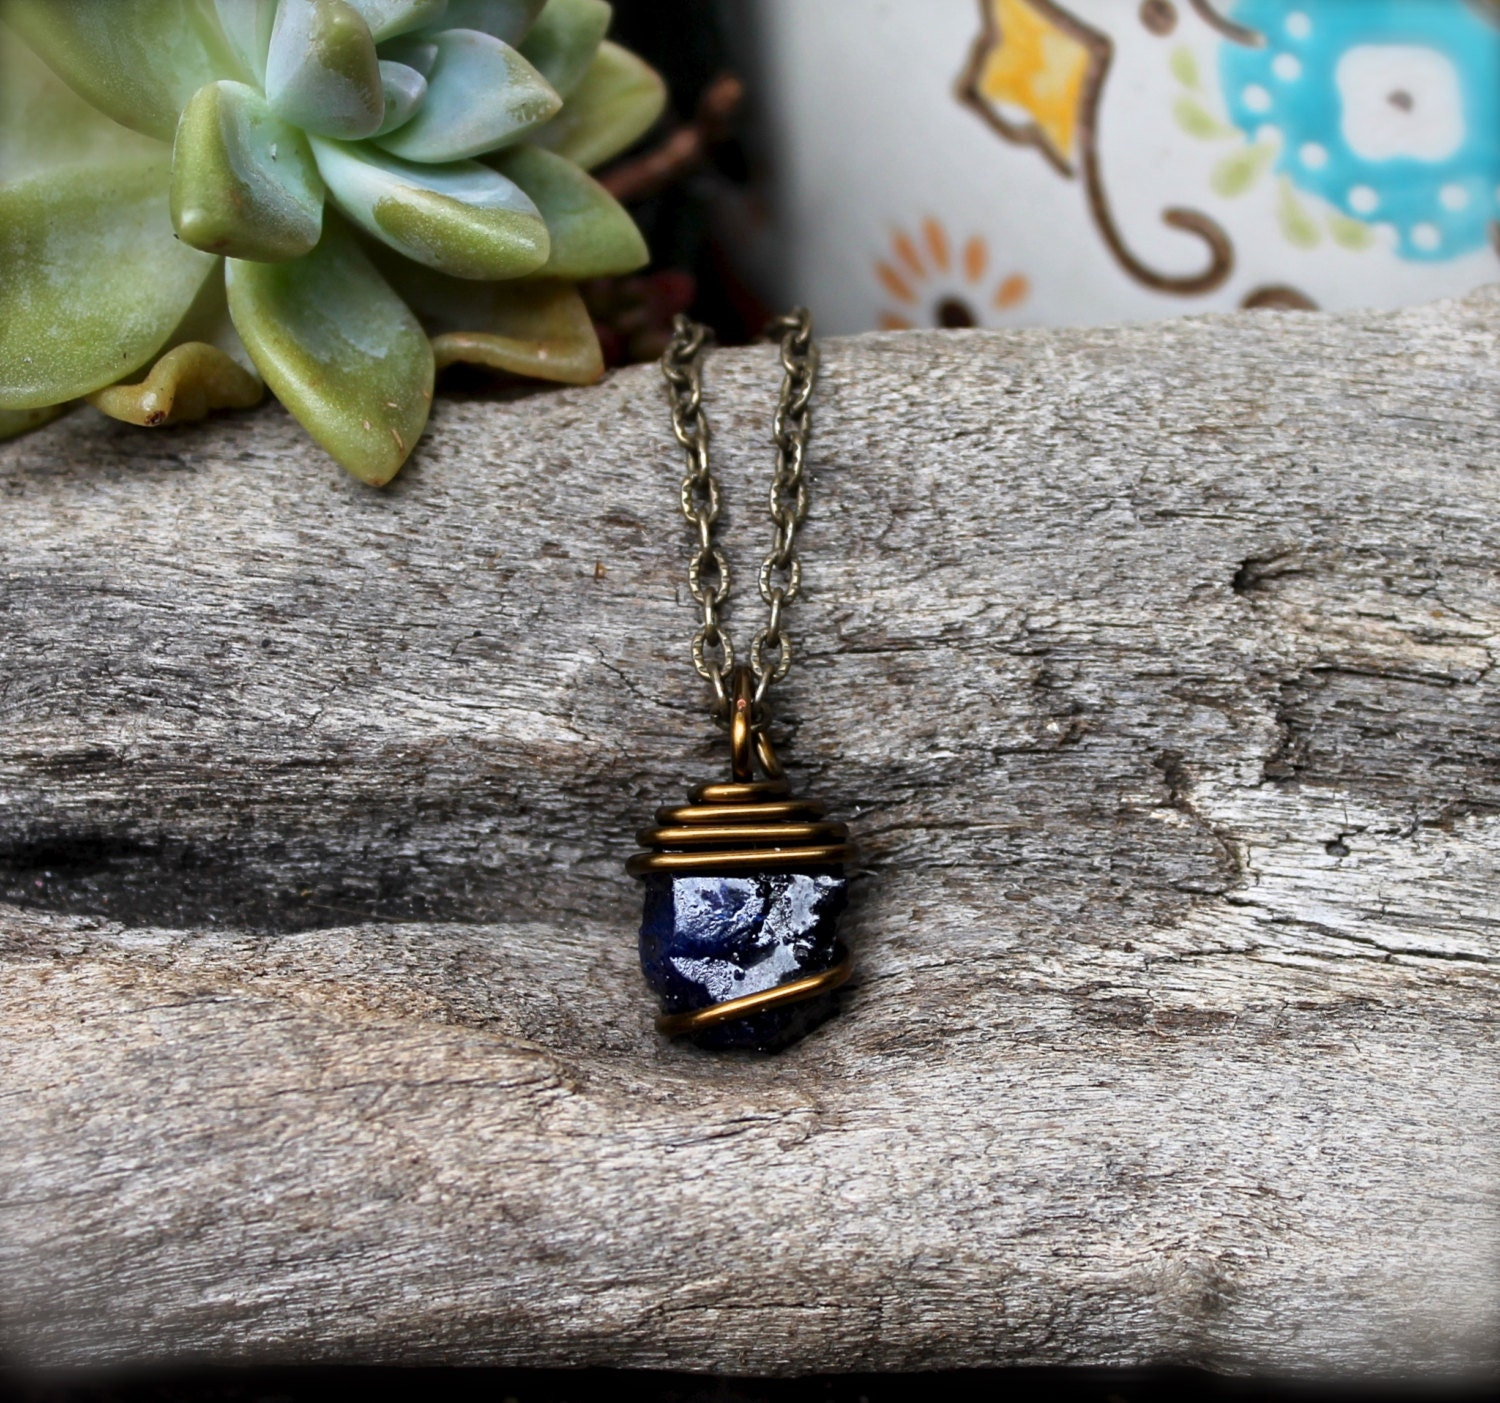 Sapphire Necklace Rough Stone Necklace Little Raw StoneUnpolished Sapphire Necklace